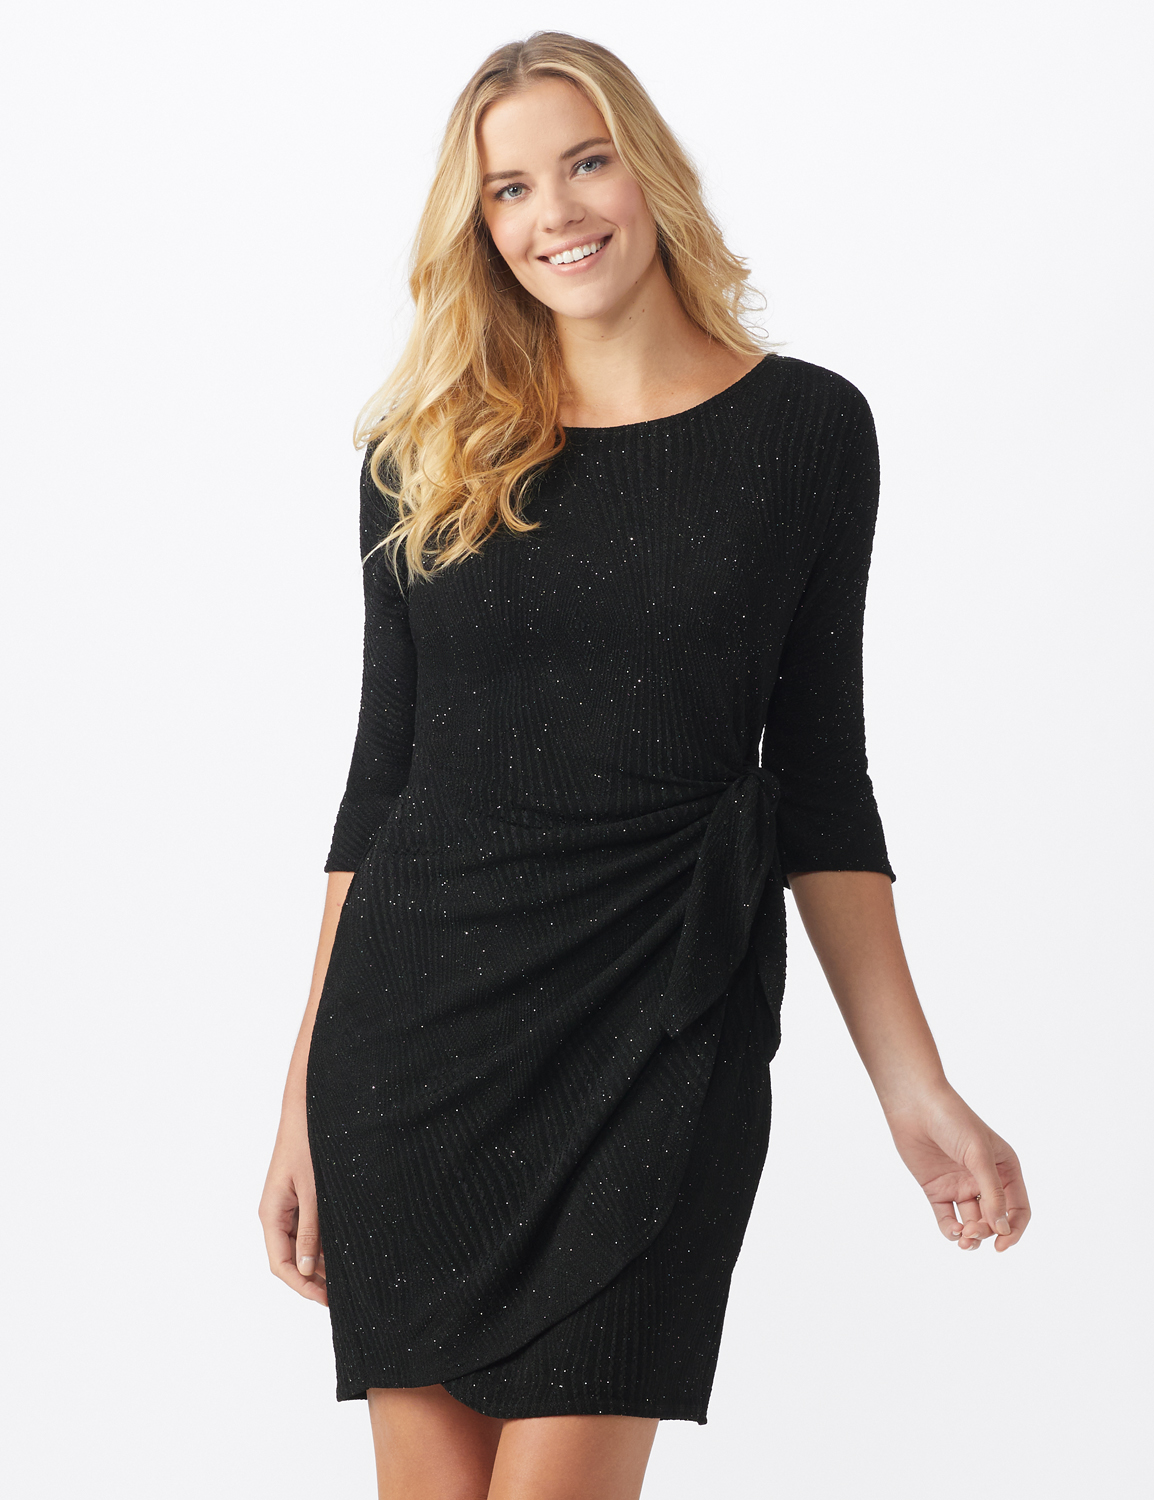 Glitter Knit  Wrap Dress - Misses -Black - Front